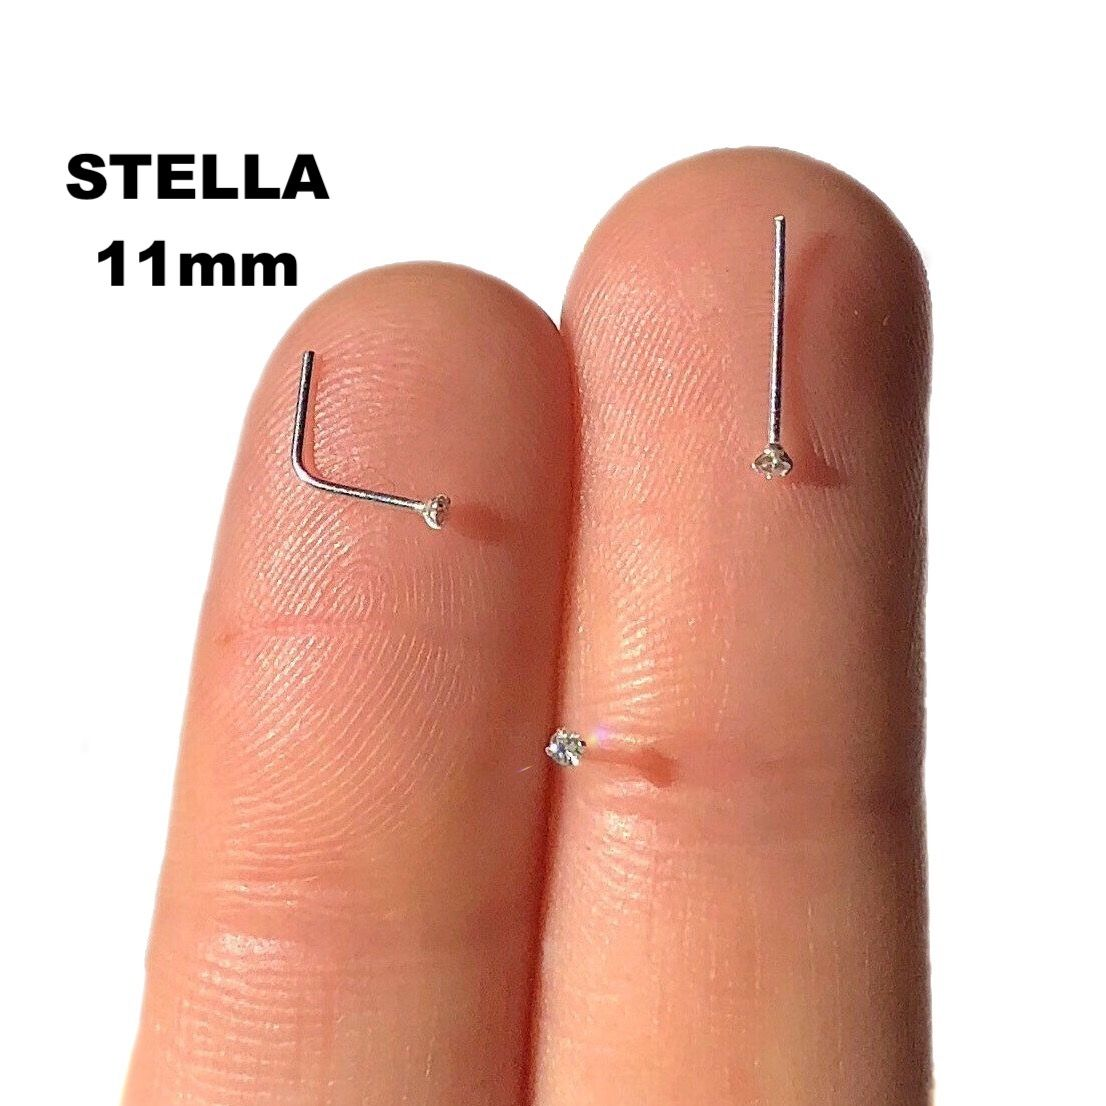 Tiny Nose Stud 1mm 22 Gauge Silver Nose Stud Nose Ring Small L